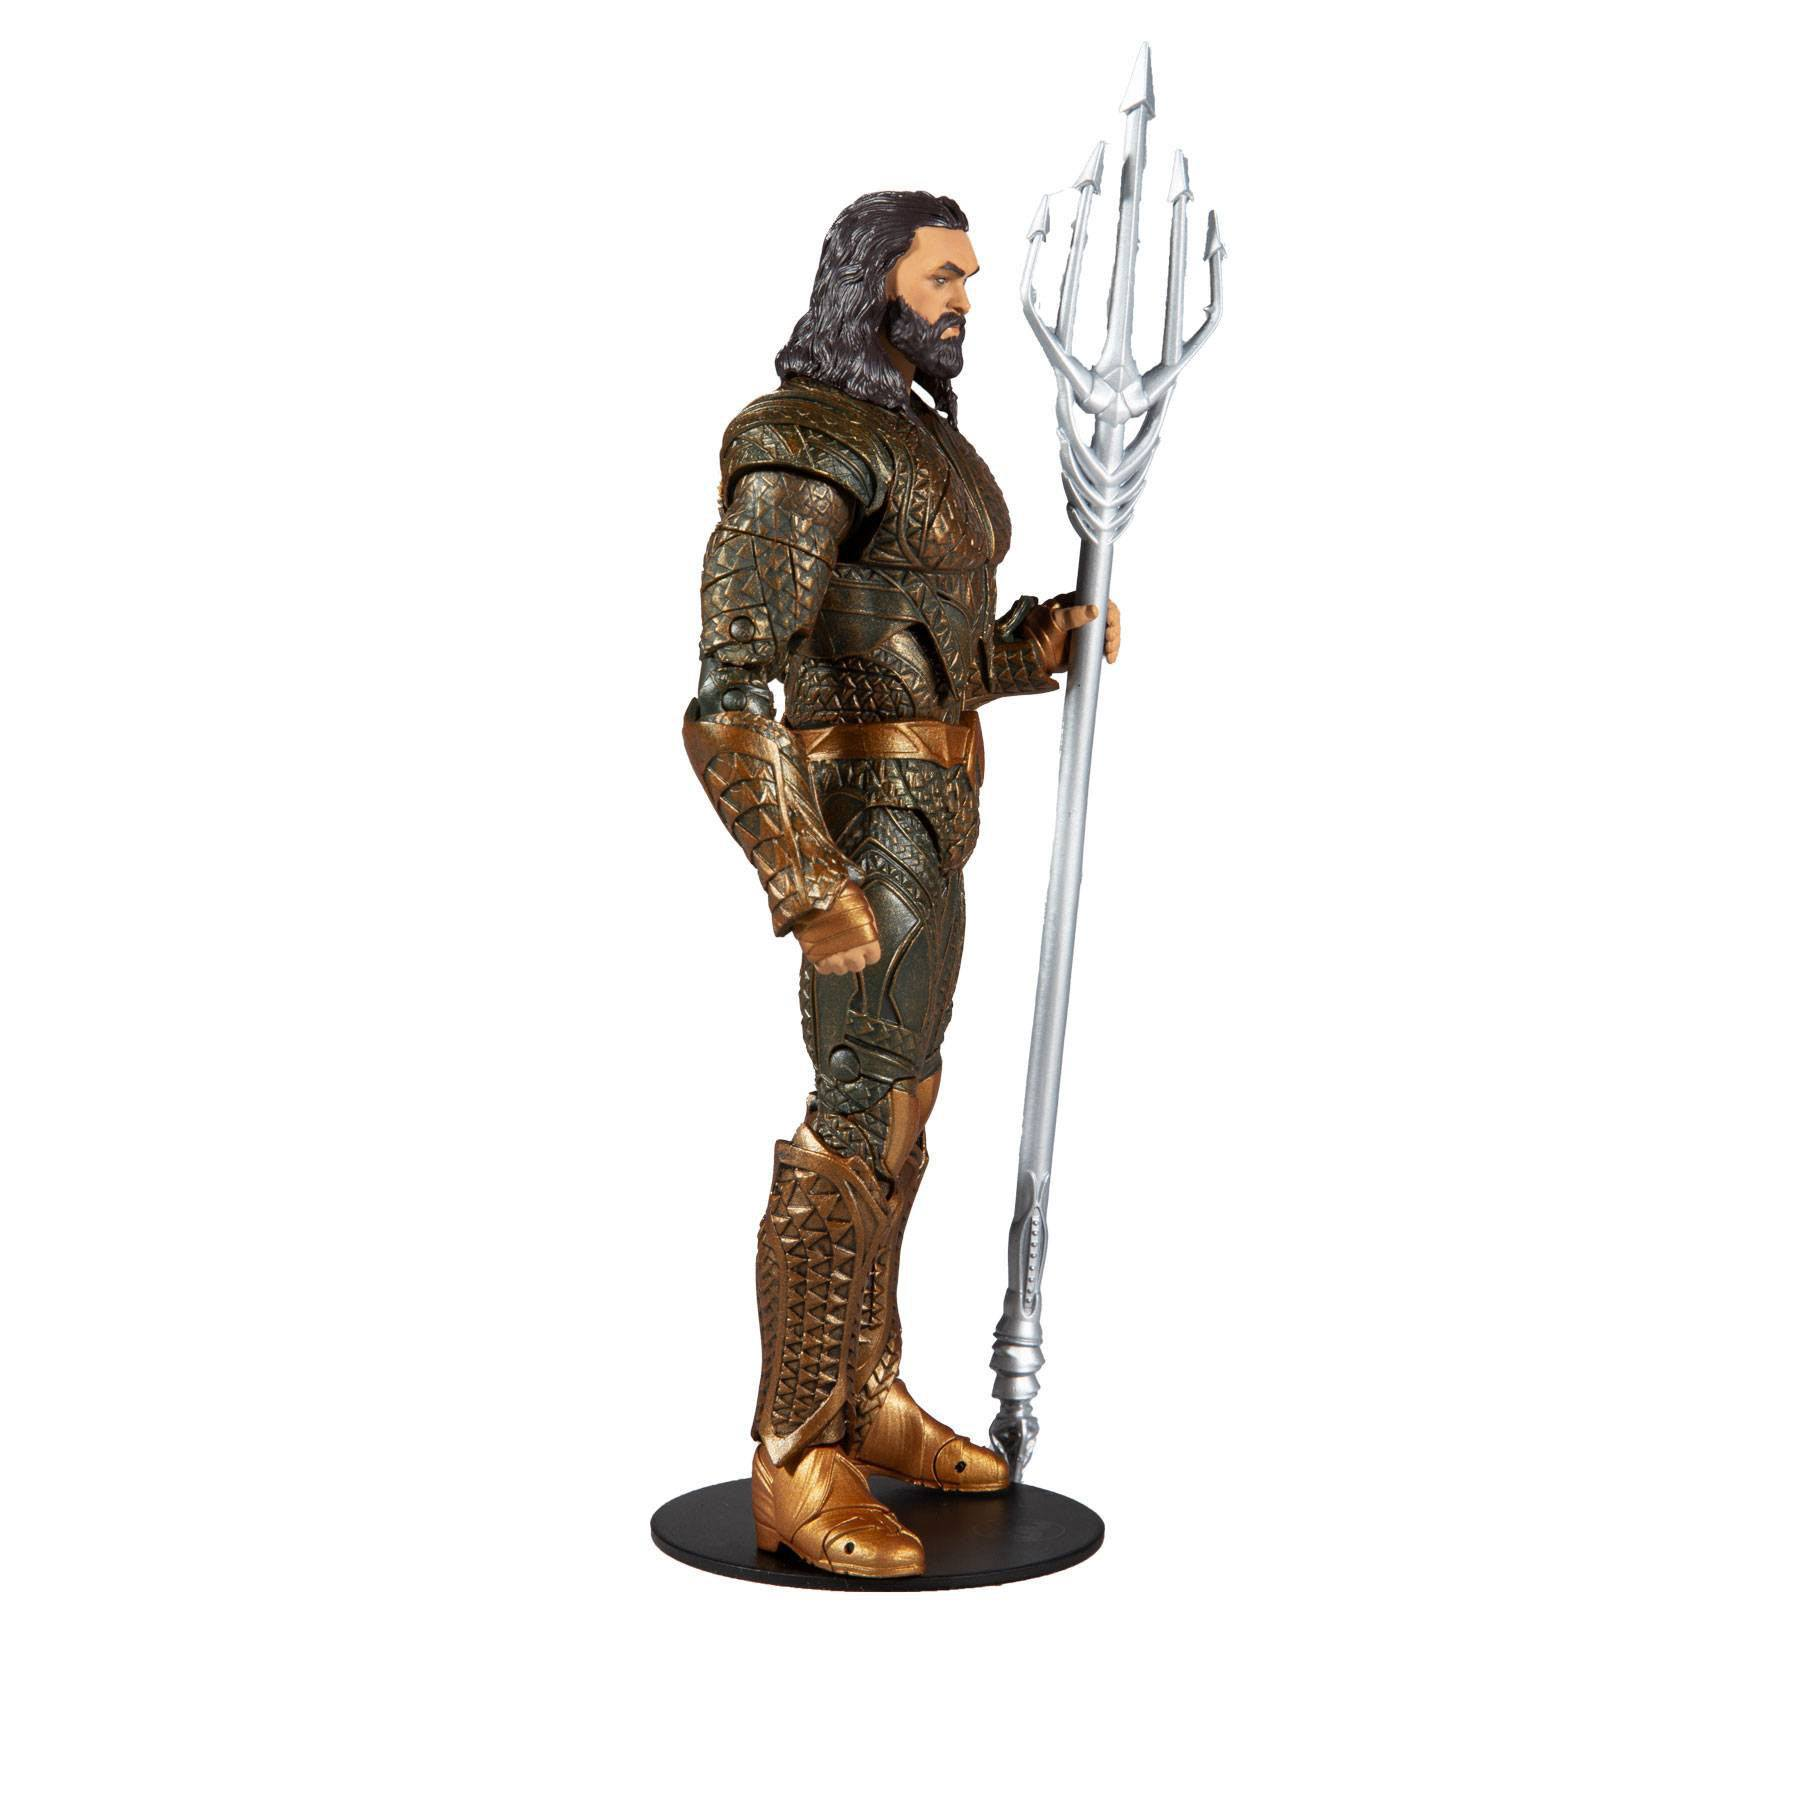 DC Justice League Movie Actionfigur Aquaman 18 cm MCF15091-9 787926150919